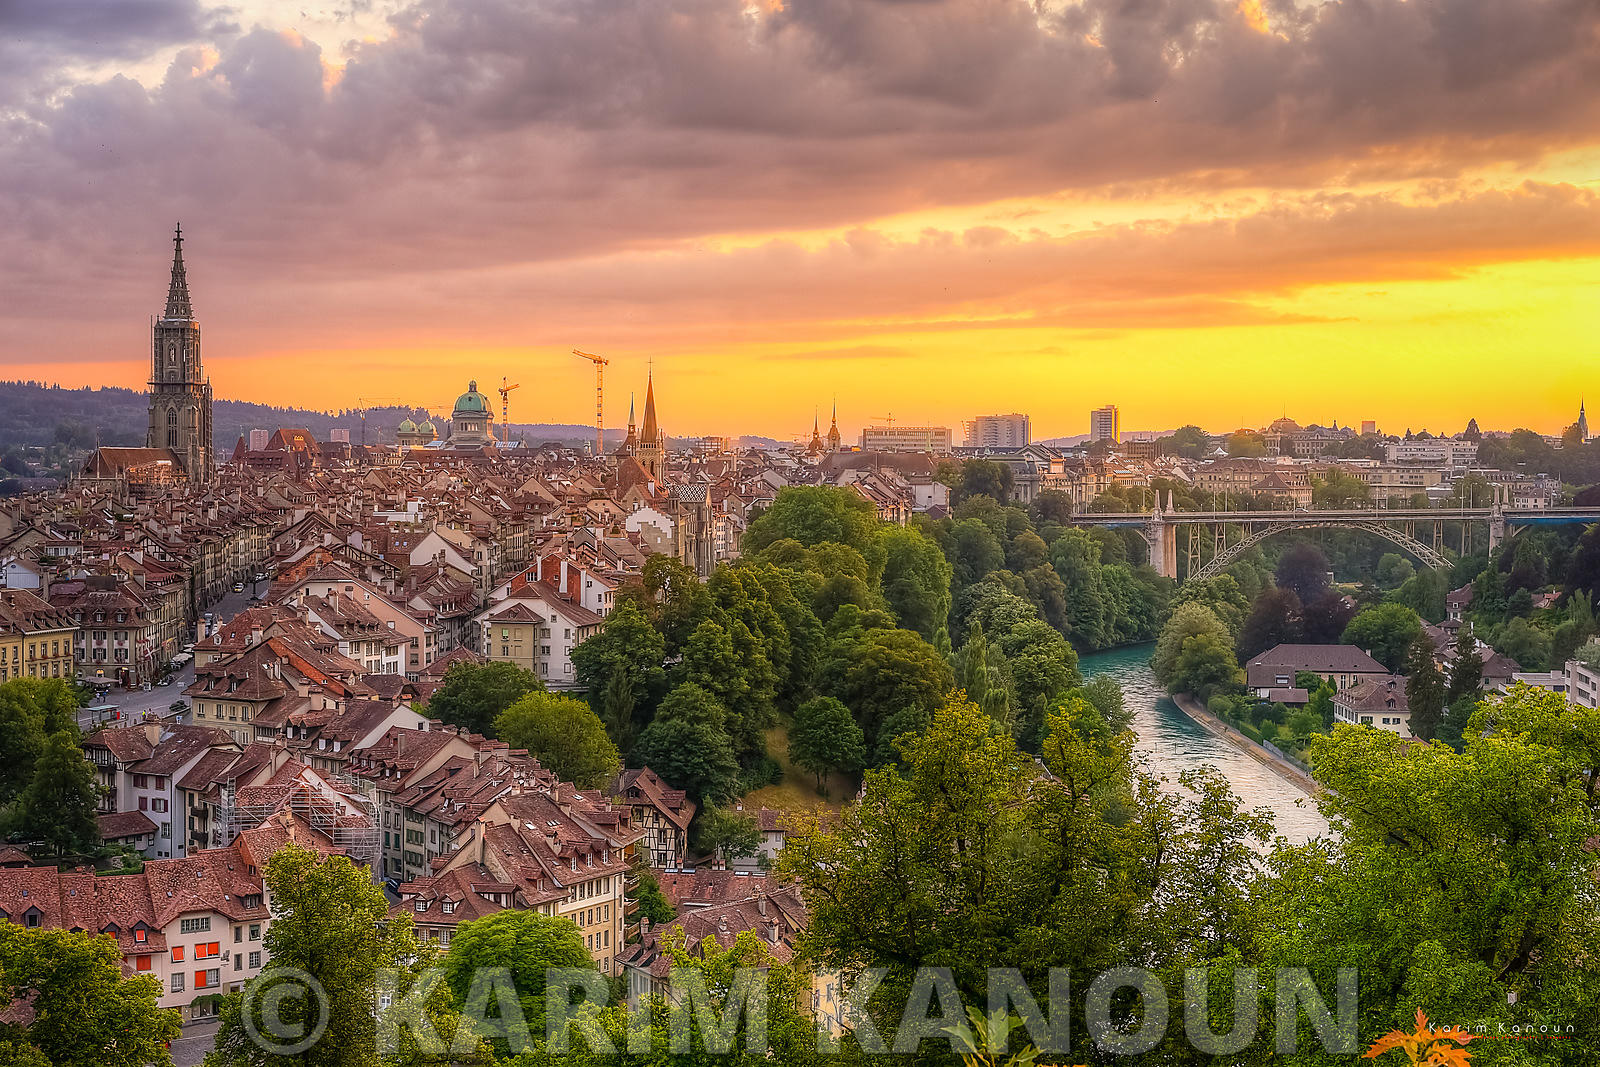 Golden Sunset - Bern